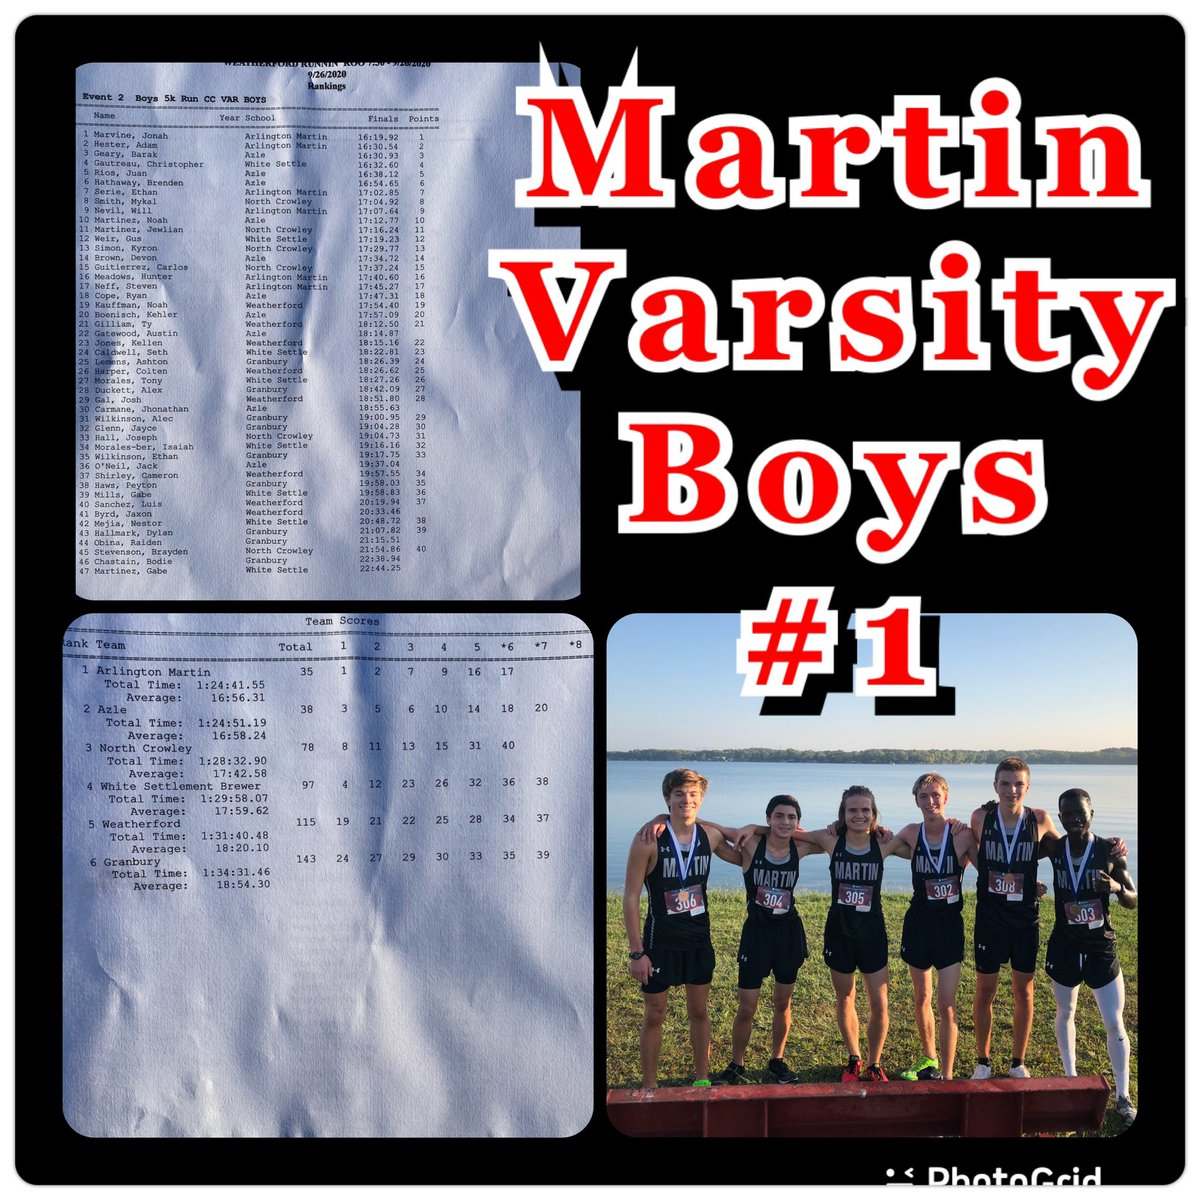 Results Are In And The Boys Get The Win!  Let's Go Guys!   #TheOnlyWayIsThrough  #Hardwork  #Week3 https://t.co/c3aGmGCxND